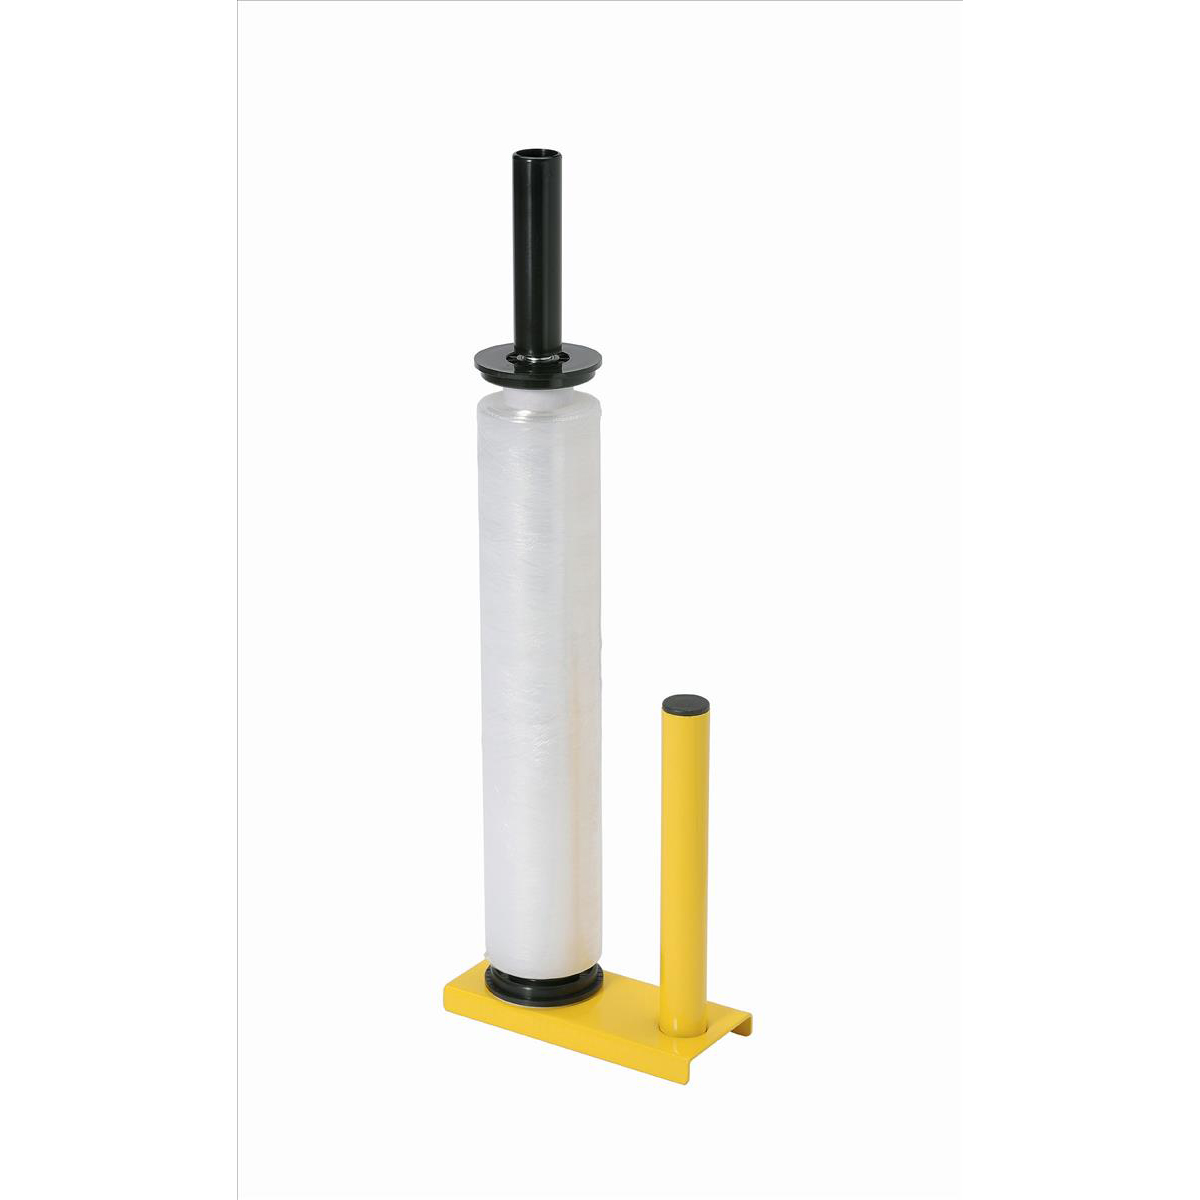 Image for Stretchwrap Dispenser Freestanding Cores 38 & 50 & 75mm and Lengths 400 & 500mm